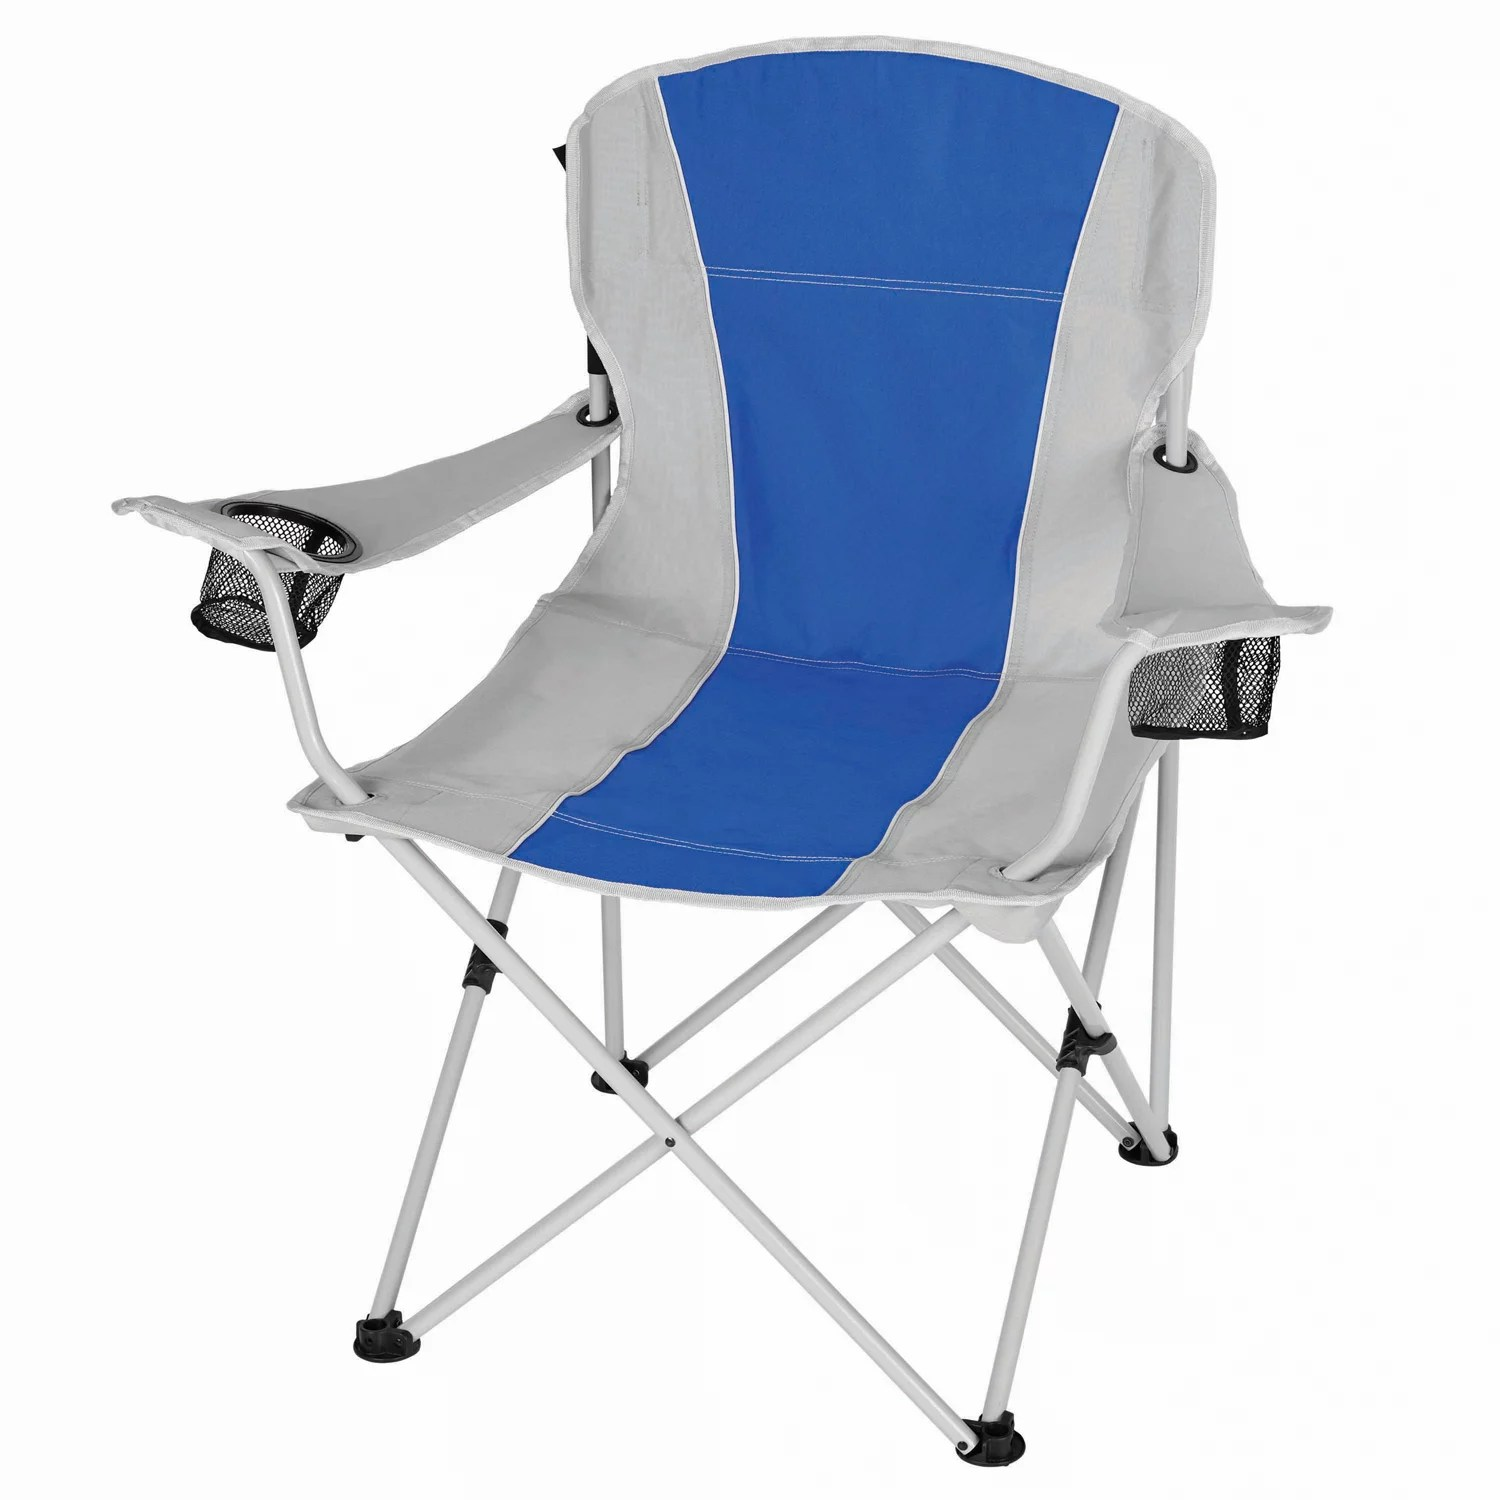 coleman oversized quad chair with cooler pouch ergonomic desk camping furniture - walmart.com